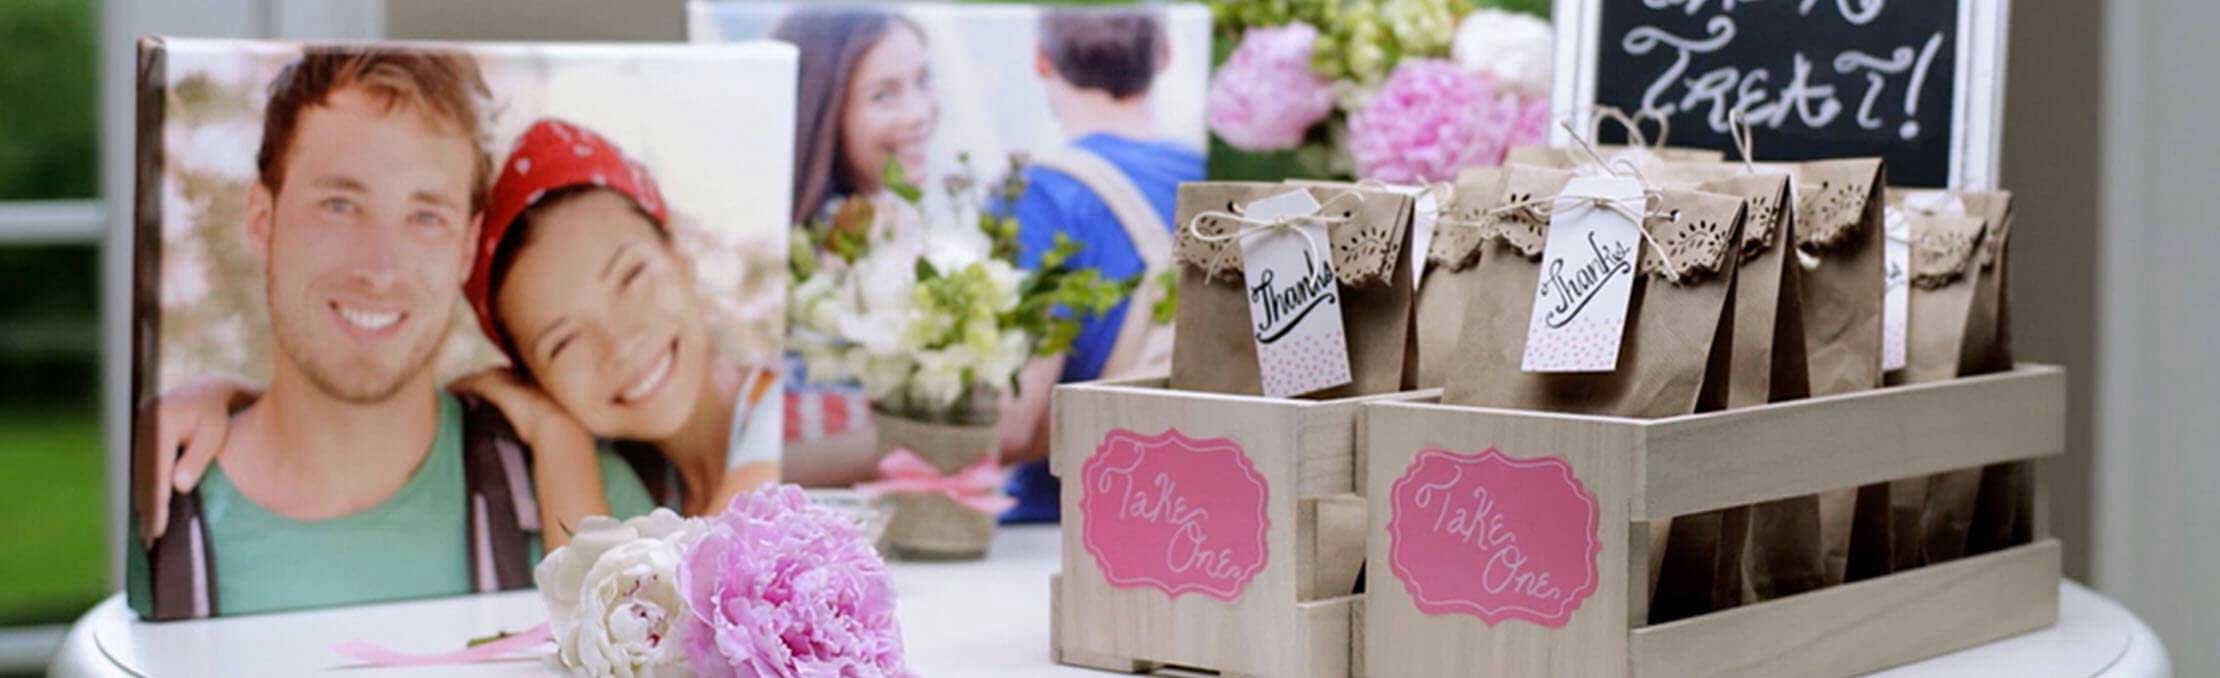 incorporating photo projects into the decorations for the bridal shower will do the trick delight the bride with the following ideas